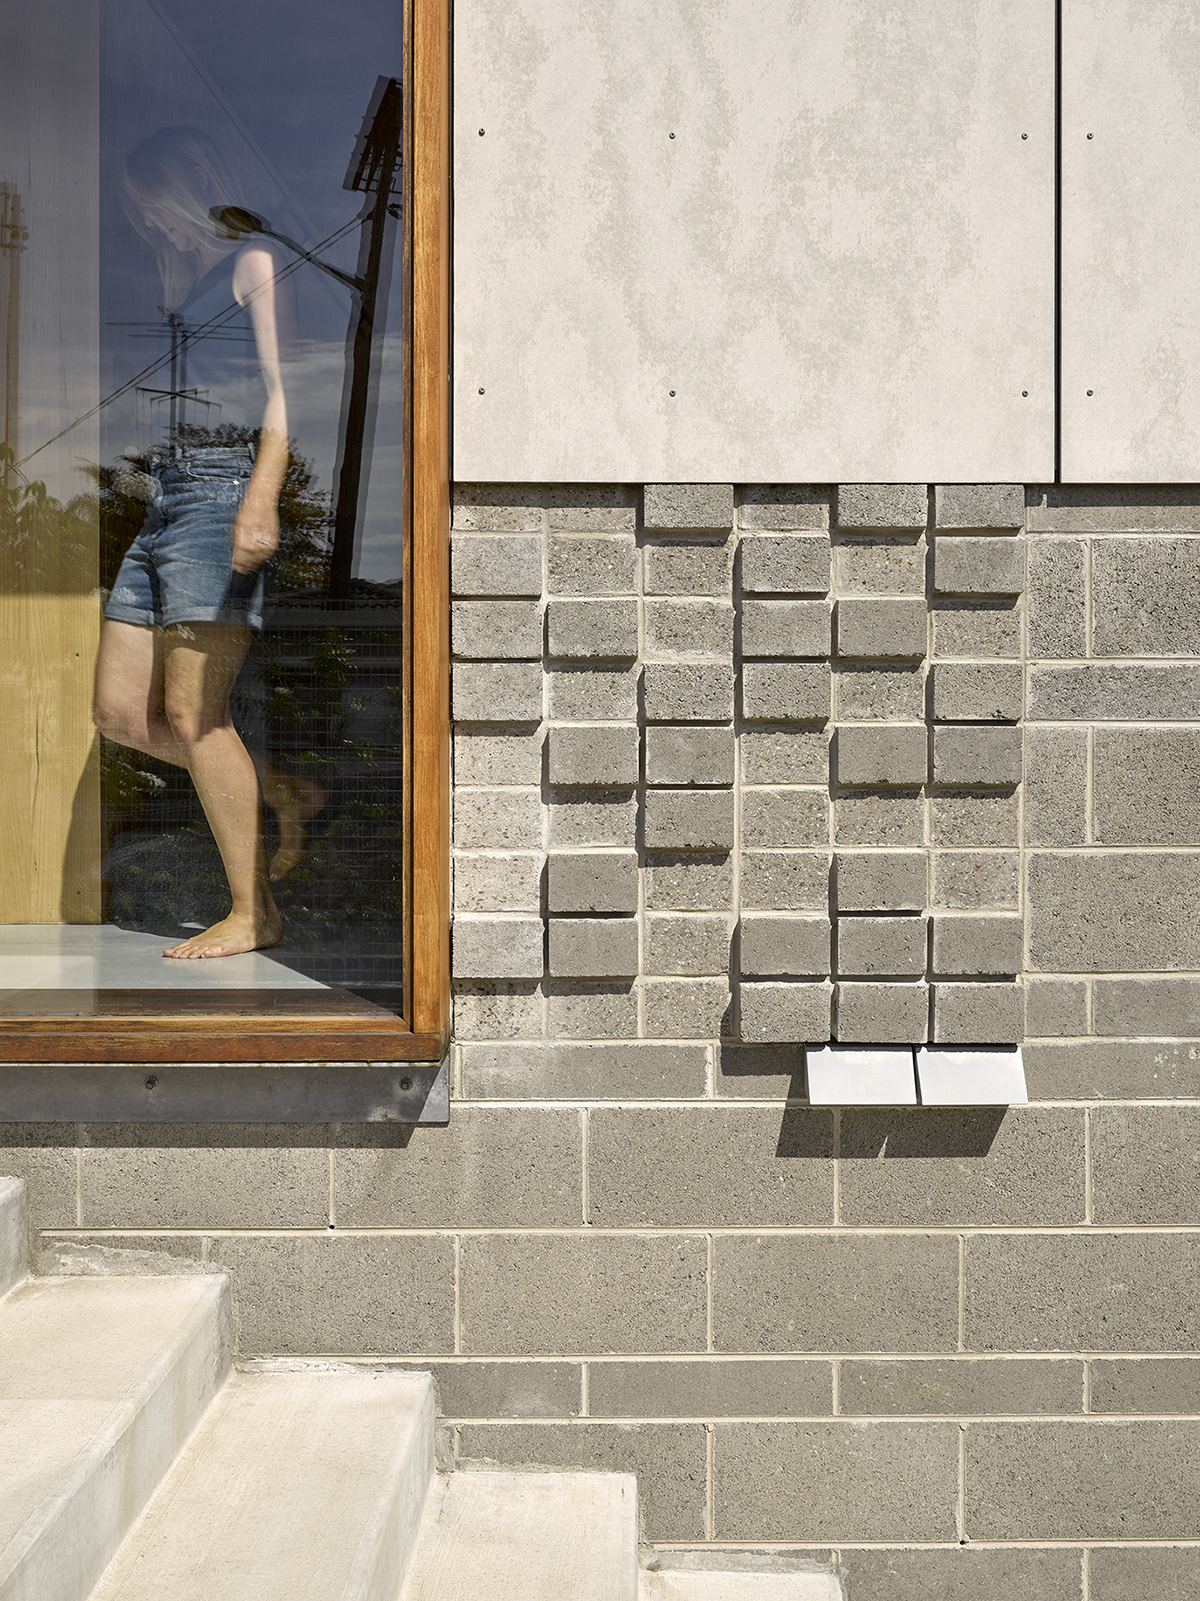 Image Of Blockwork Detail Above A Wall Light And A Person Depending A Stair Seen Through The Window.